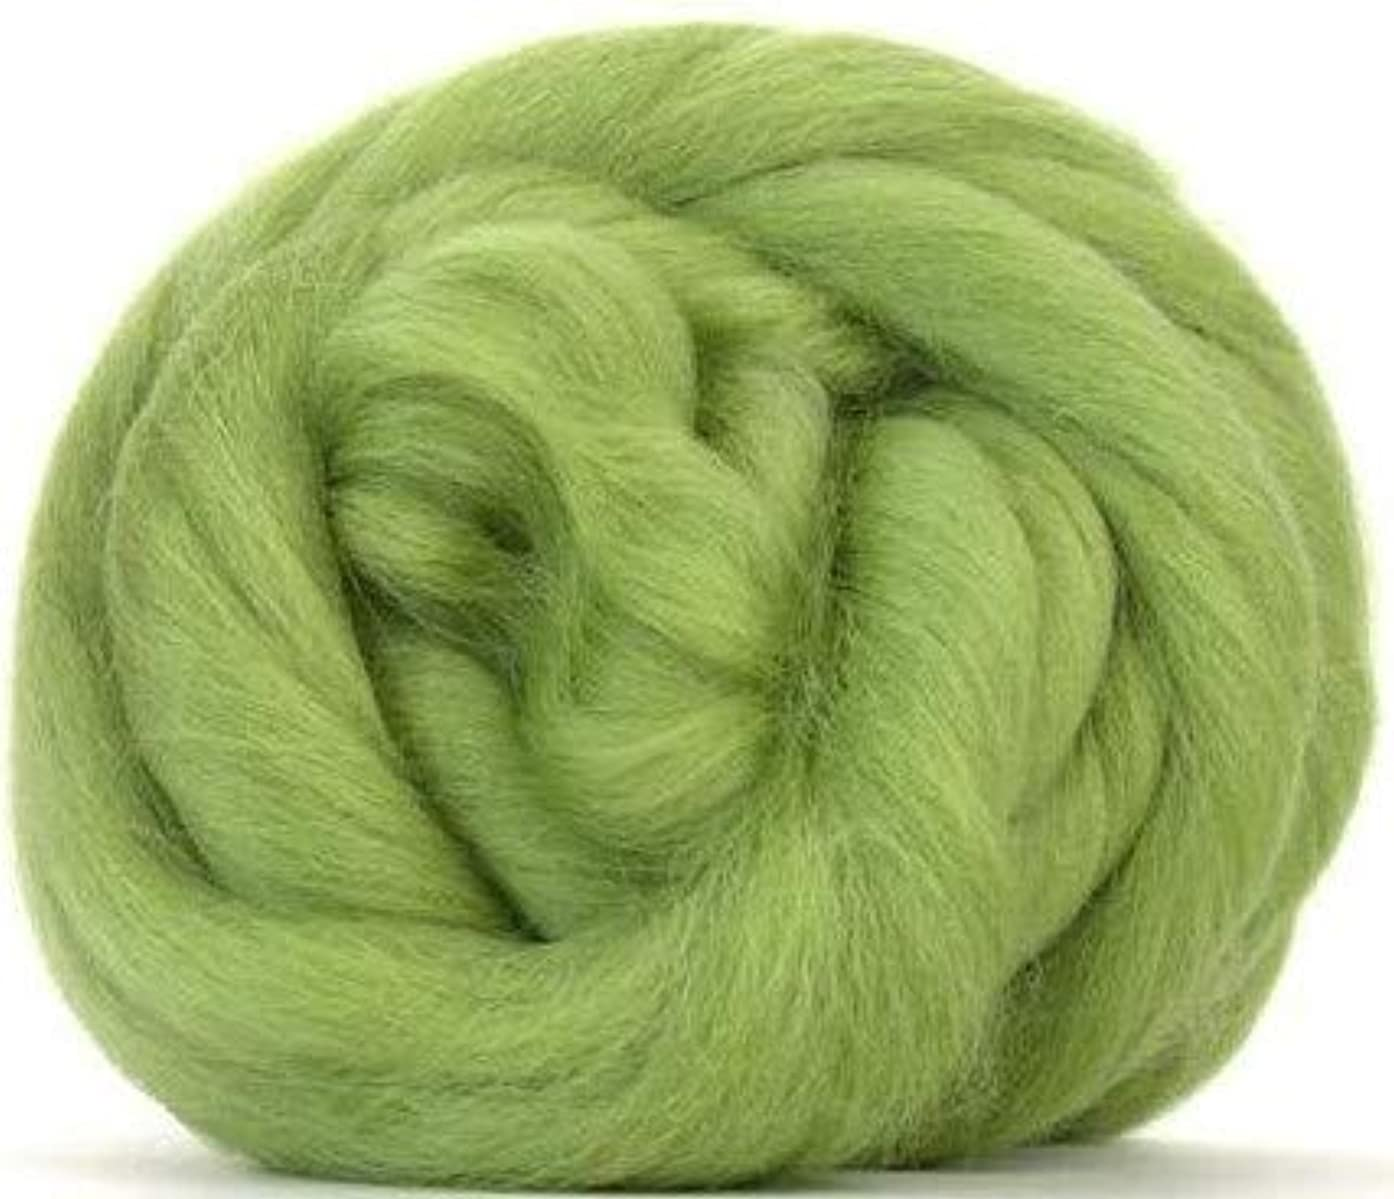 4 oz Paradise Fibers Sage (Green) Corriedale Top Spinning Fiber Luxuriously Soft Wool Top Roving for Spinning with Spindle or Wheel, Felting, Blending and Weaving